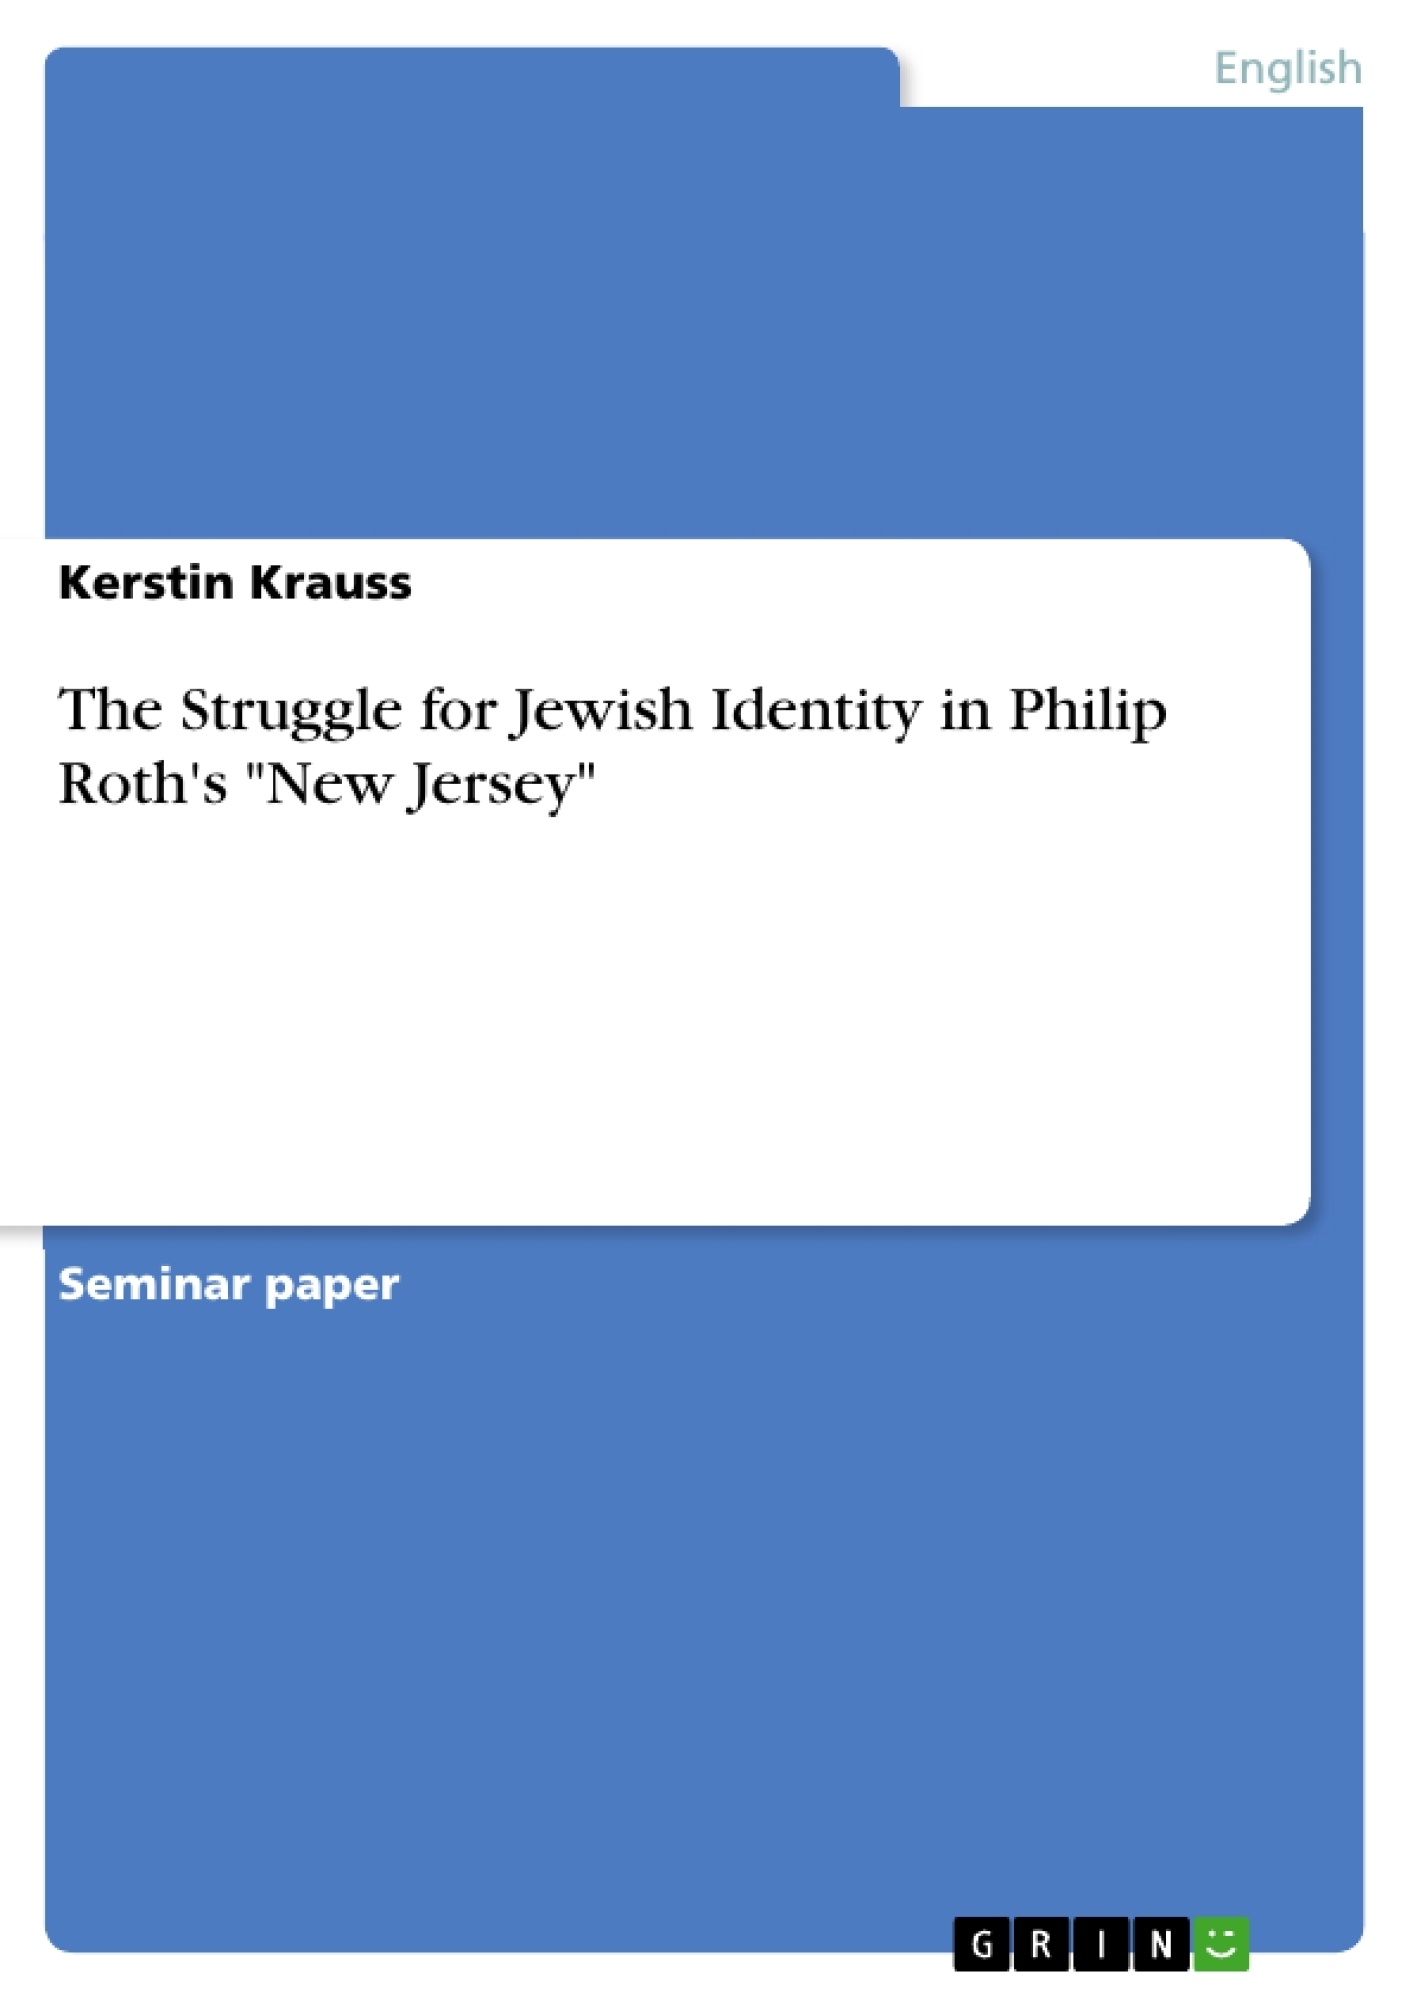 """Title: The Struggle for Jewish Identity in Philip Roth's """"New Jersey"""""""